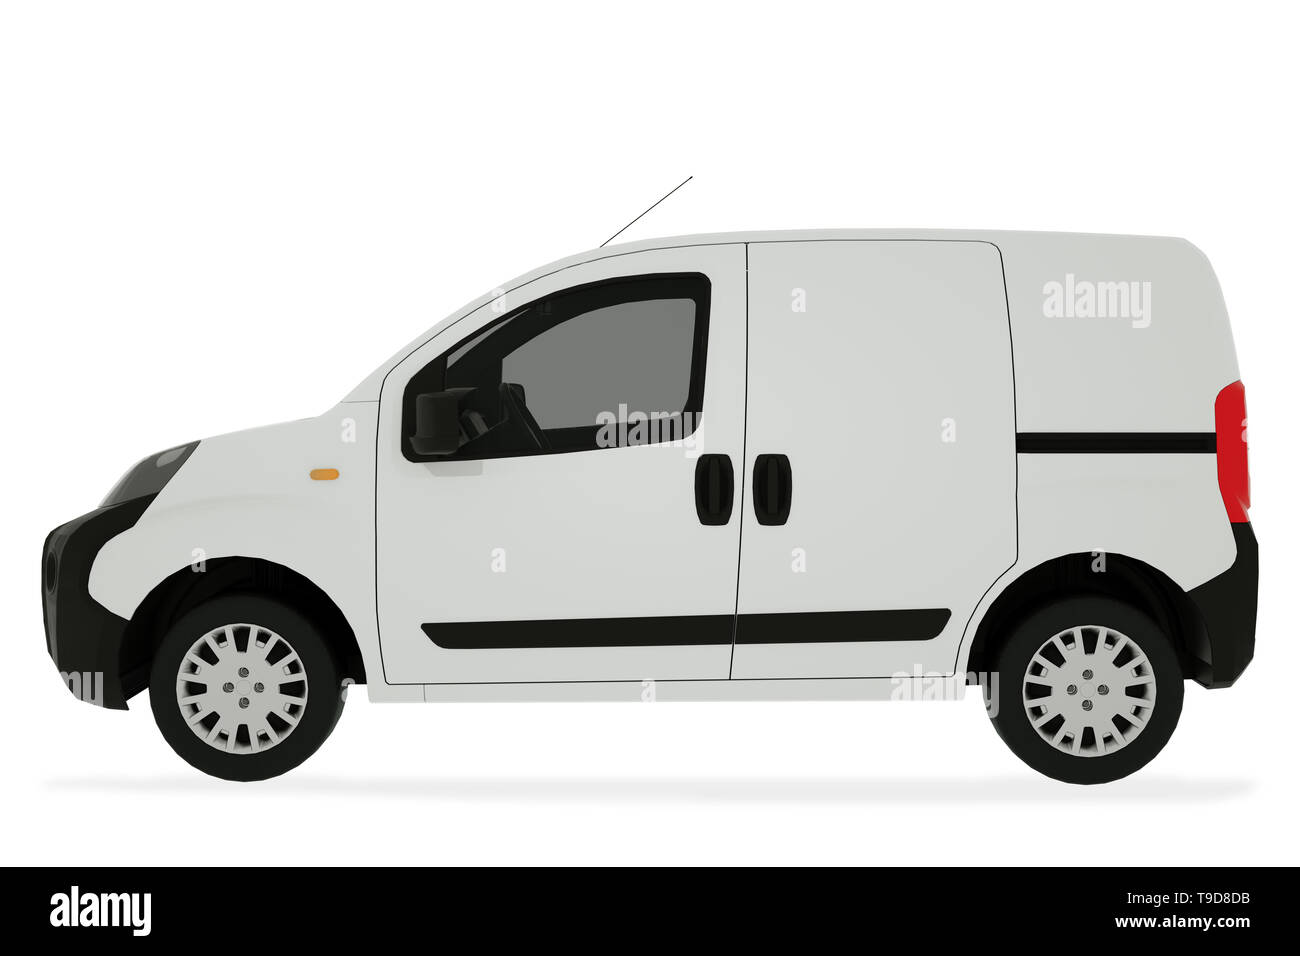 Pickup car on white background mock up. Delivery Van 3D Illustration. - Stock Image